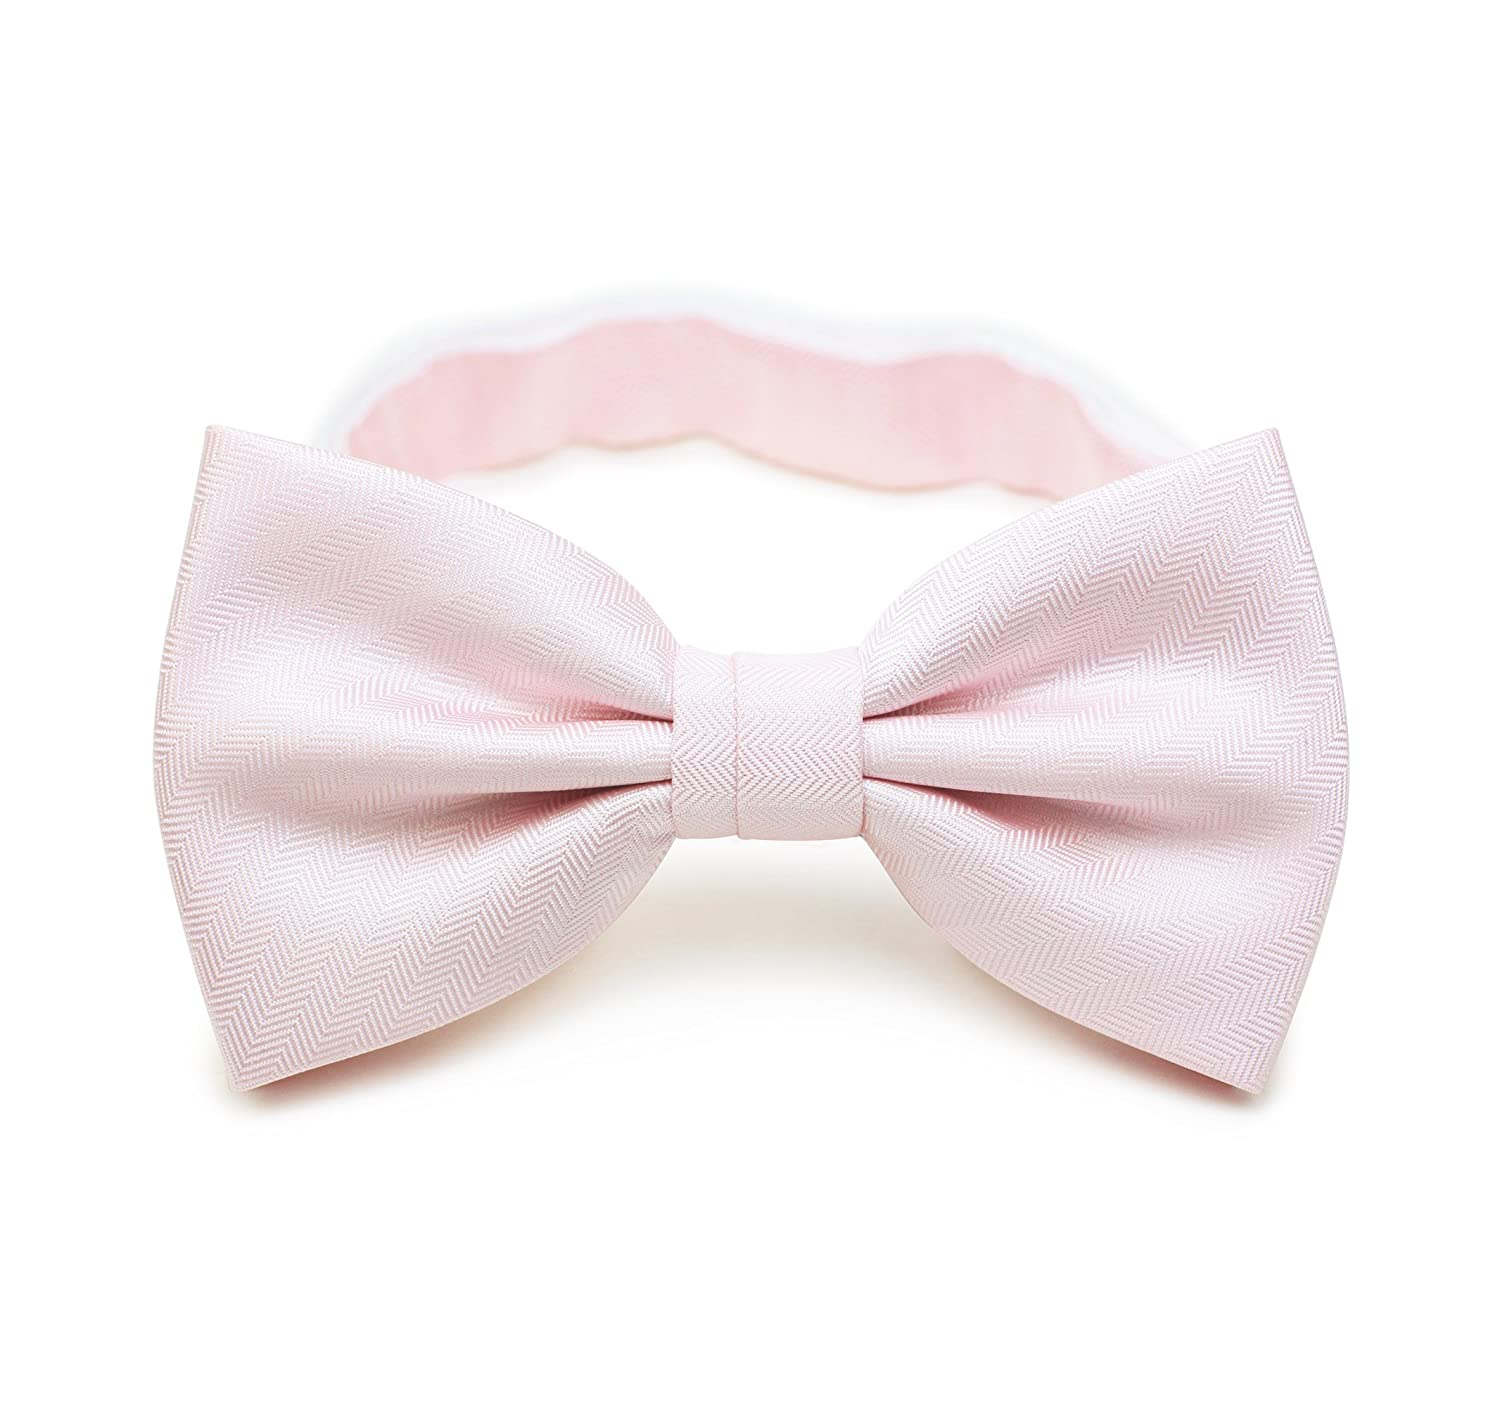 Bows-N-Ties Mens Solid Pre-Tied Bow Tie and Pocket Square Set Matte Herringbone Finish CS1100F+T